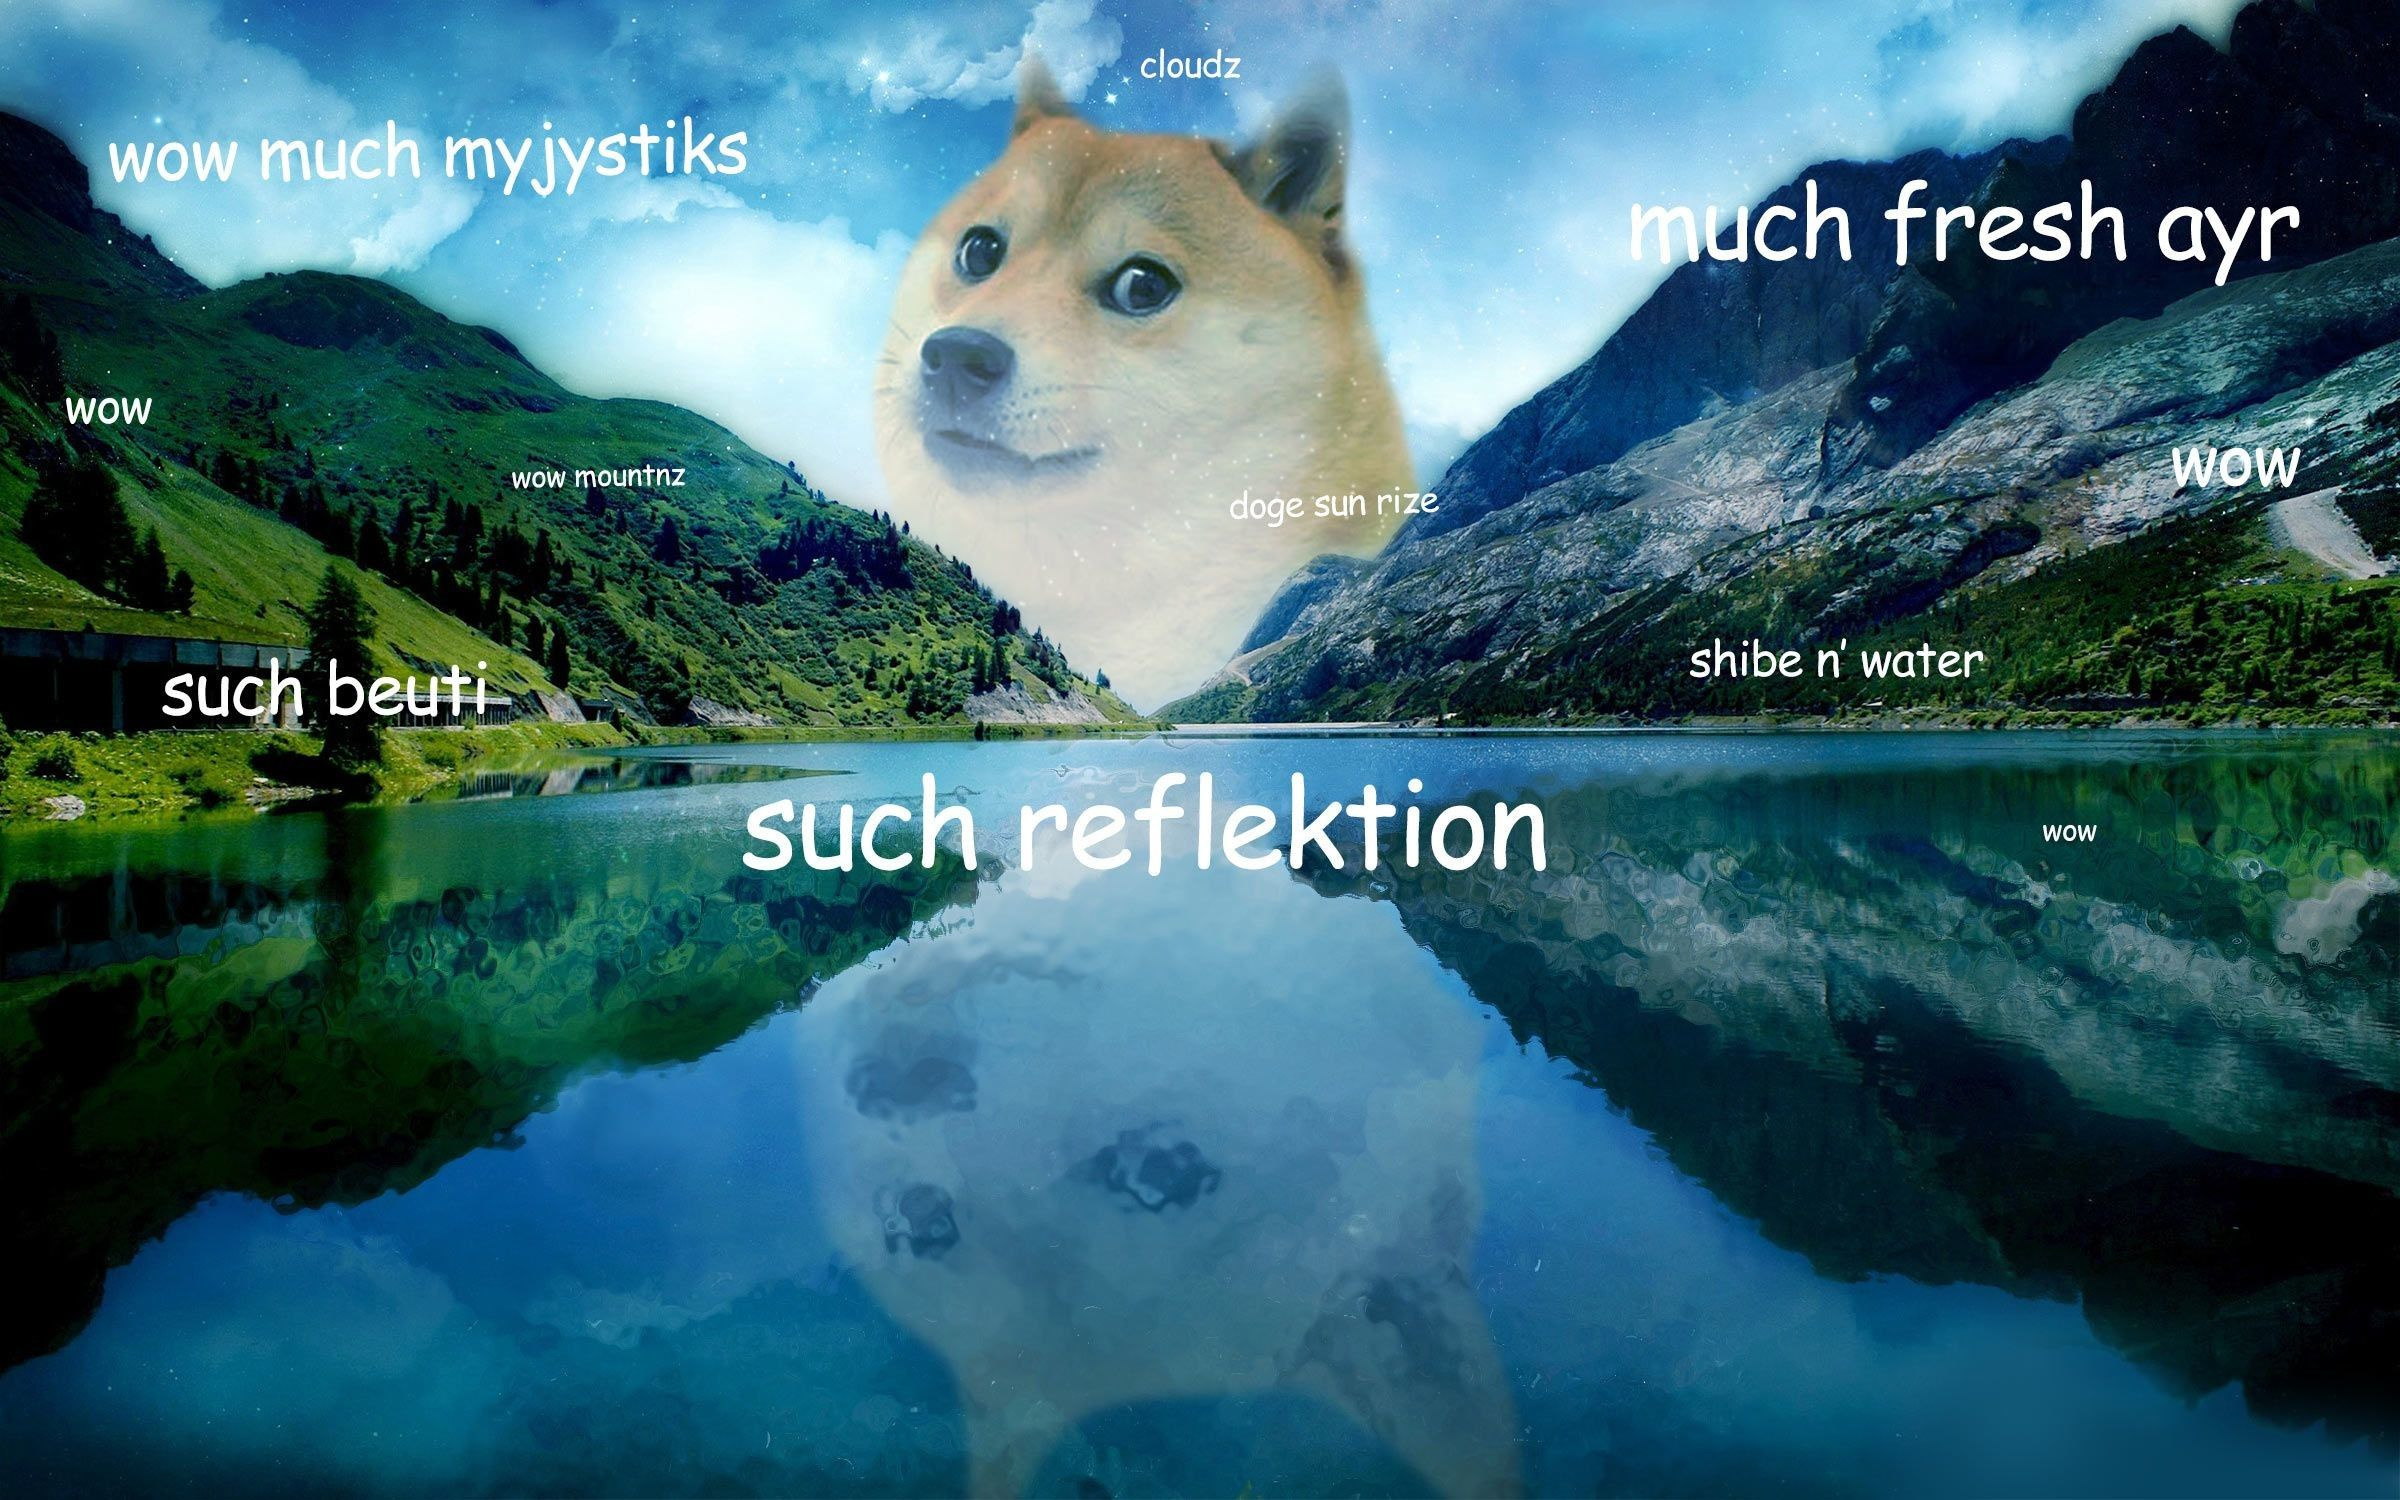 76 Doge Meme Wallpapers on WallpaperPlay Doge, Doge meme